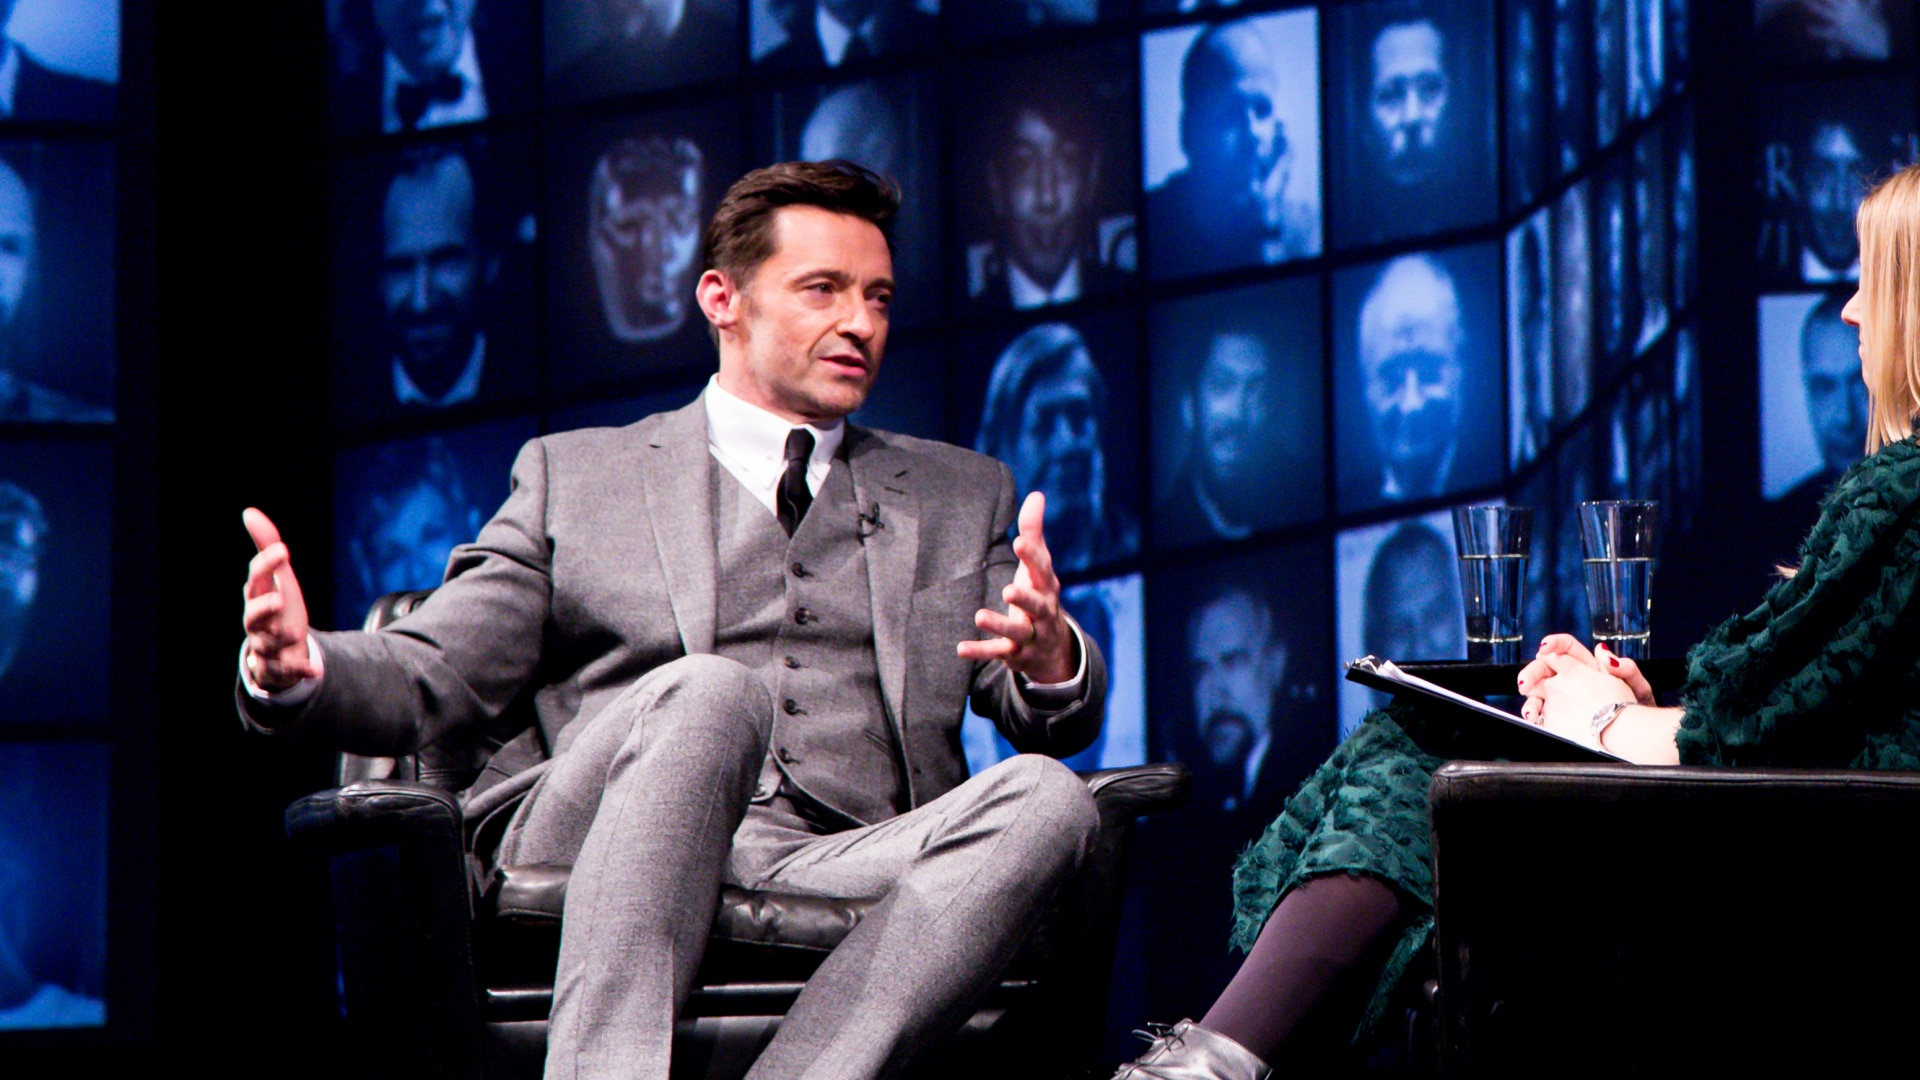 Bafta: Hugh Jackman...Life In Pictures